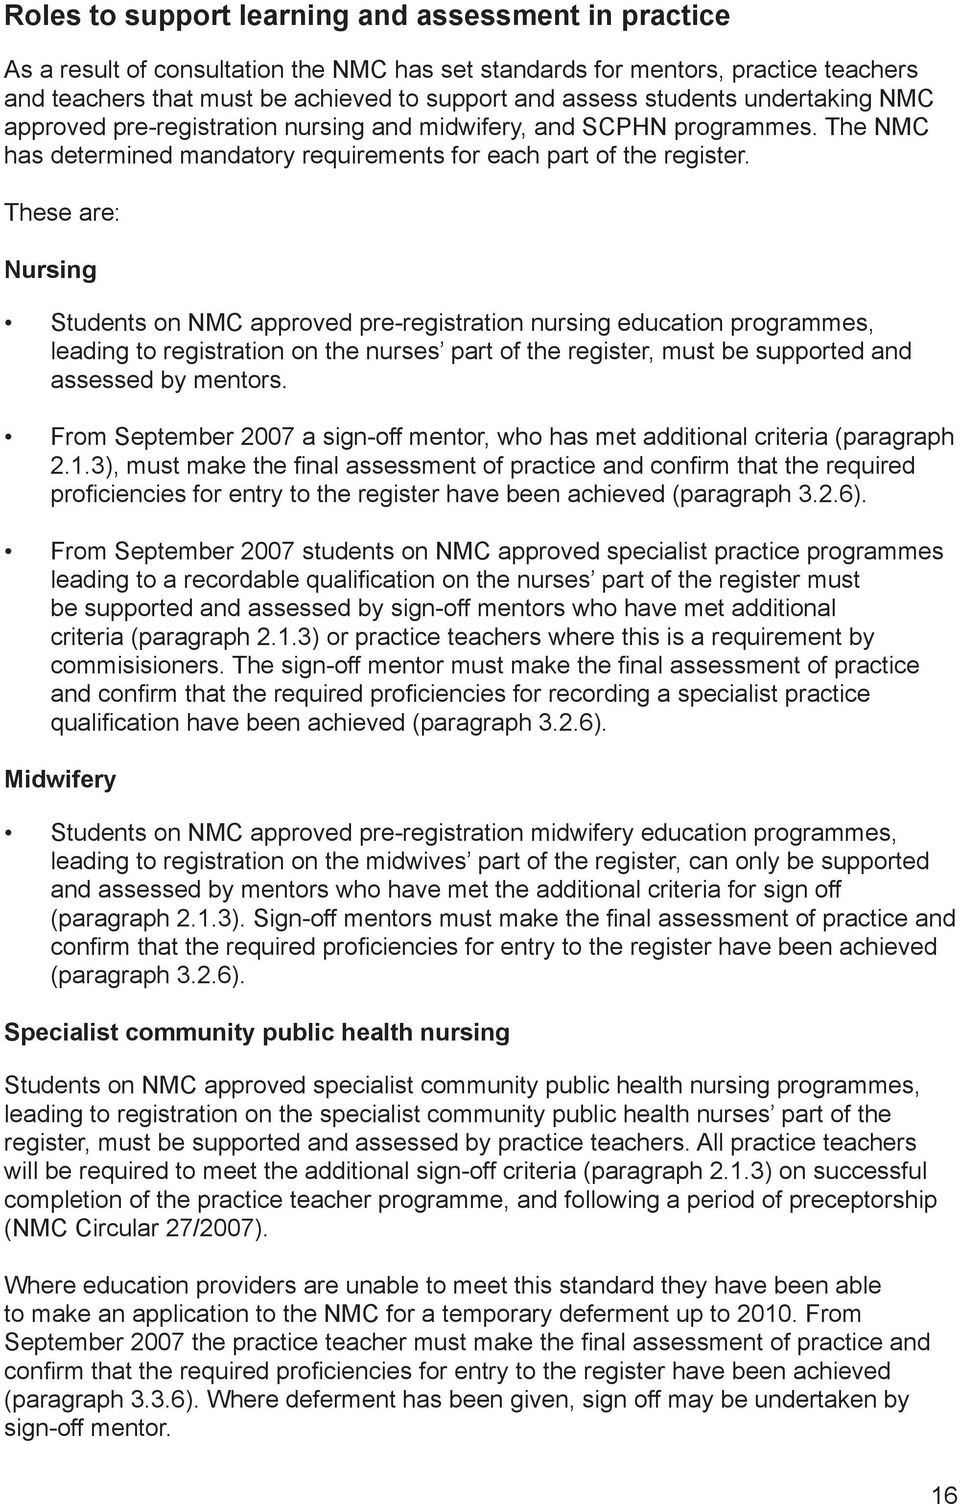 These are: Nursing Students on NMC approved pre-registration nursing education programmes, leading to registration on the nurses part of the register, must be supported and assessed by mentors.